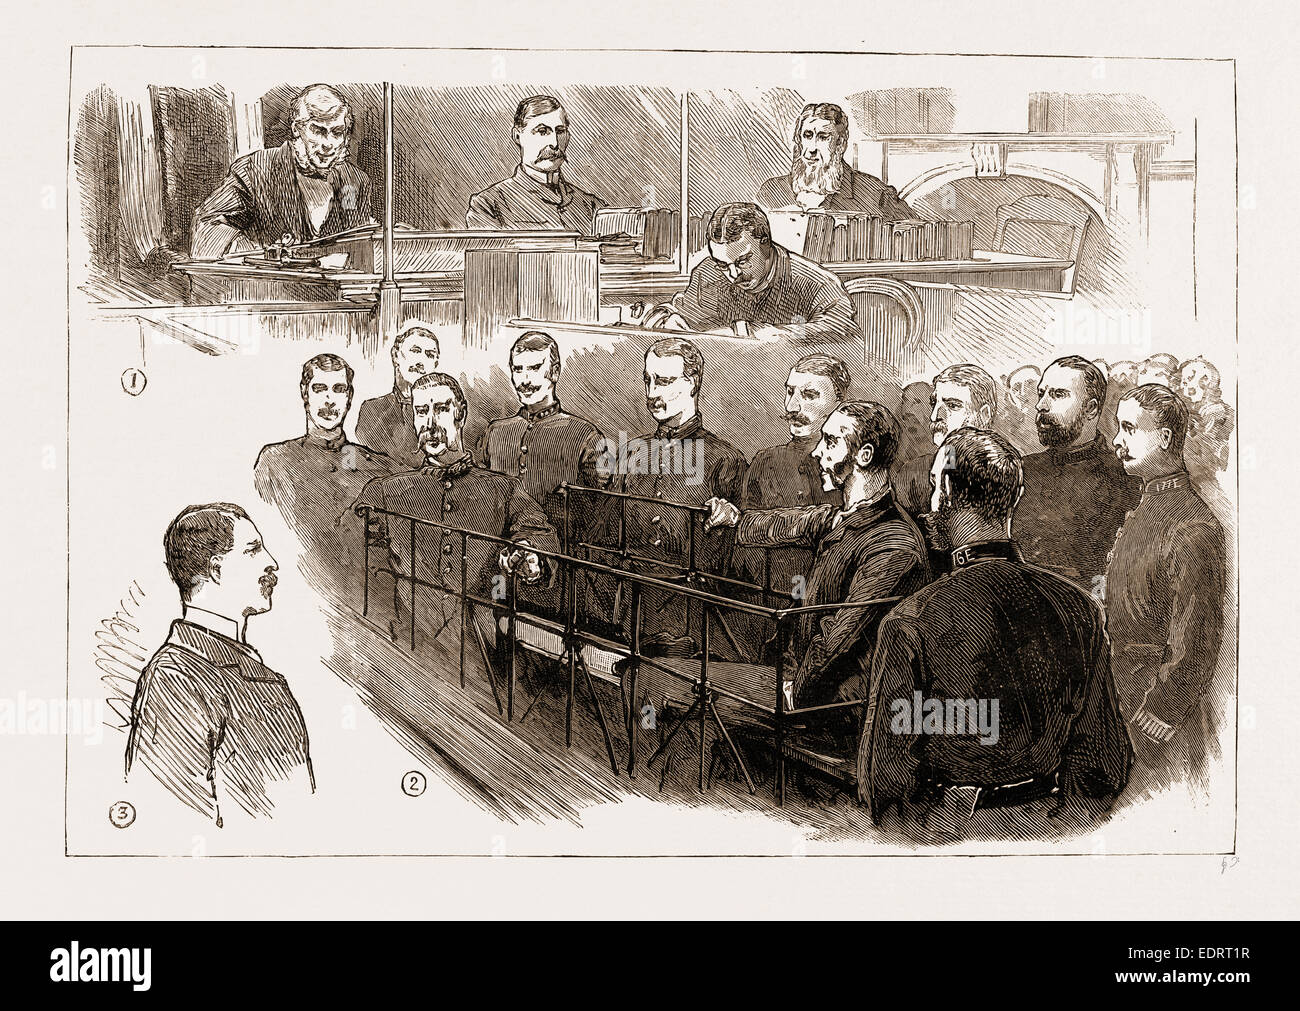 THE ASSASSINATION OF JAMES CAREY, ARRIVAL OF O'DONNELL IN LONDON: THE EXAMINATION OF THE PRISONER AT BOW STREET - Stock Image